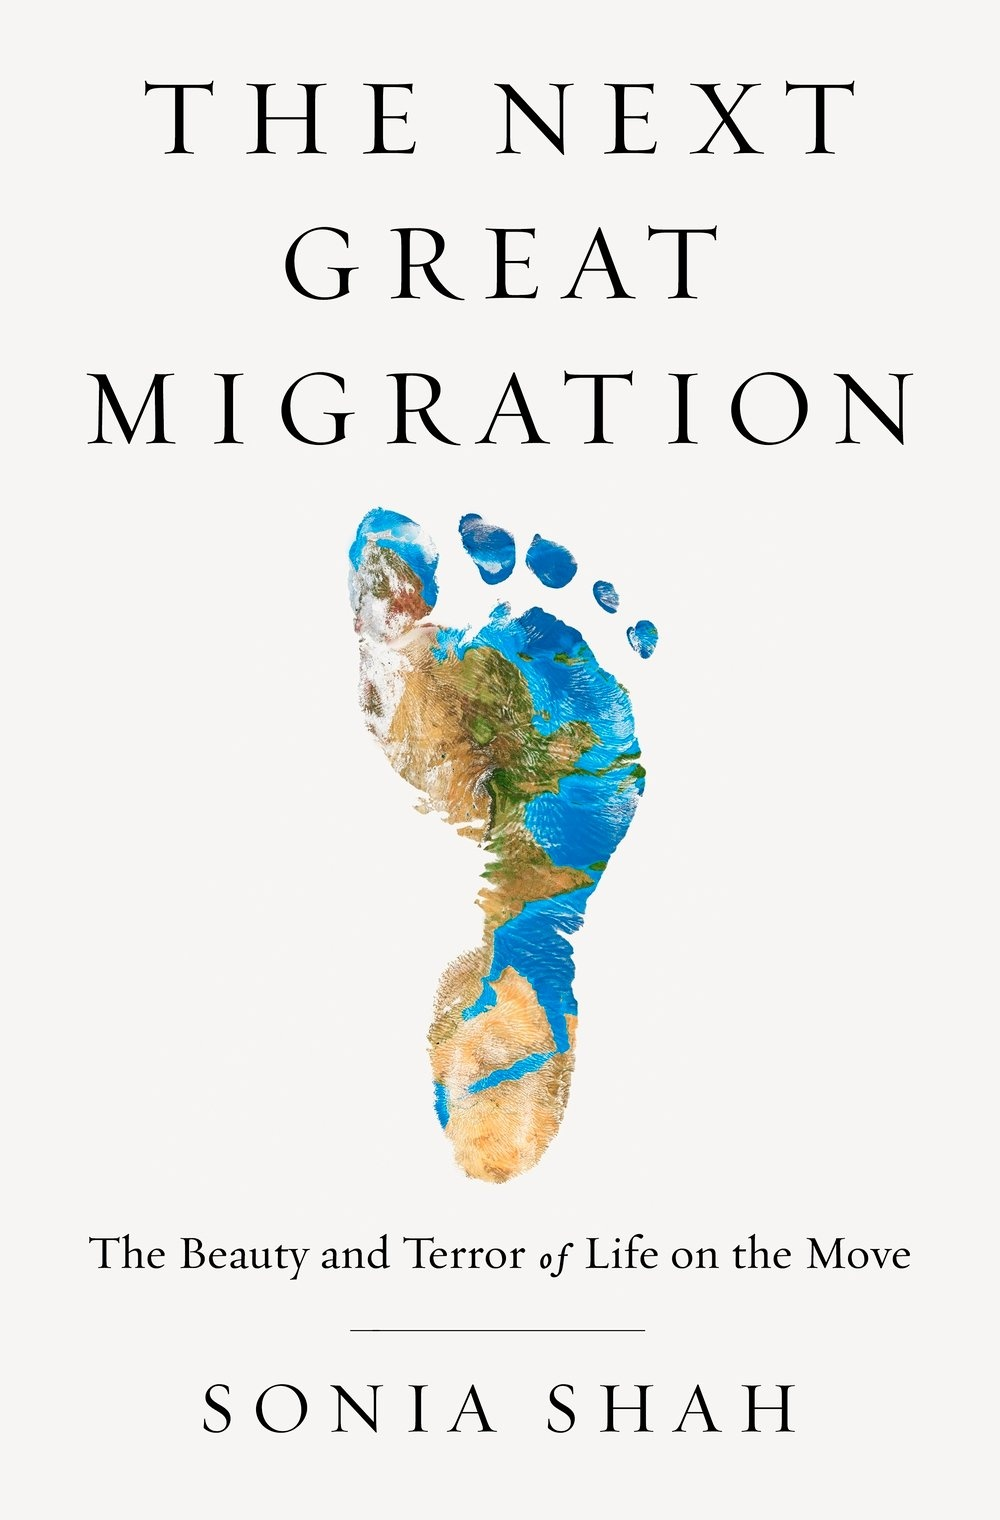 Cuoc dai di cu tiep theo,  The Next Great Migration anh 3